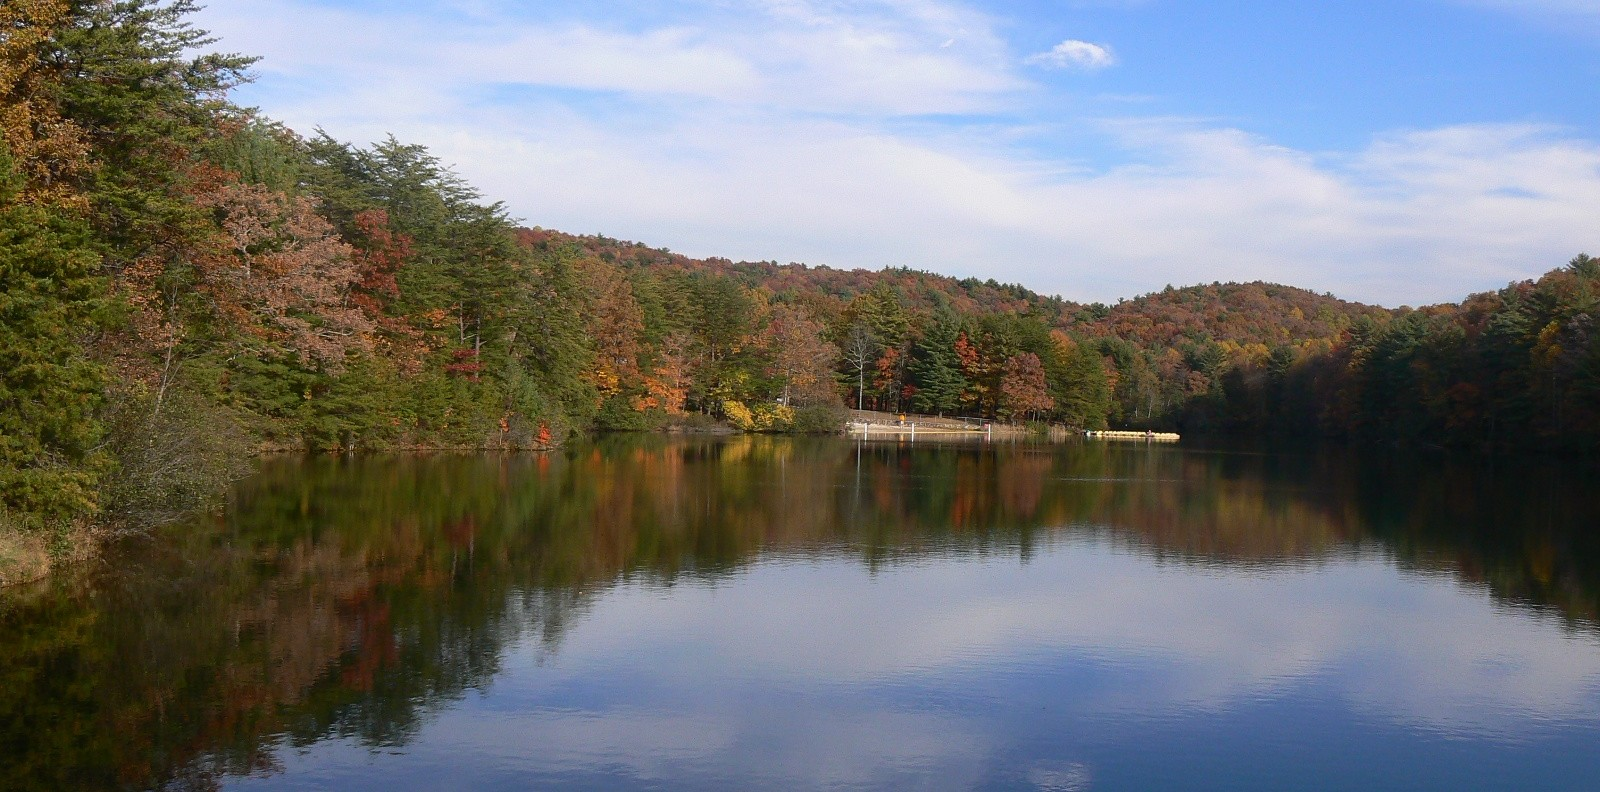 Carters Lake Welch S Guide Service